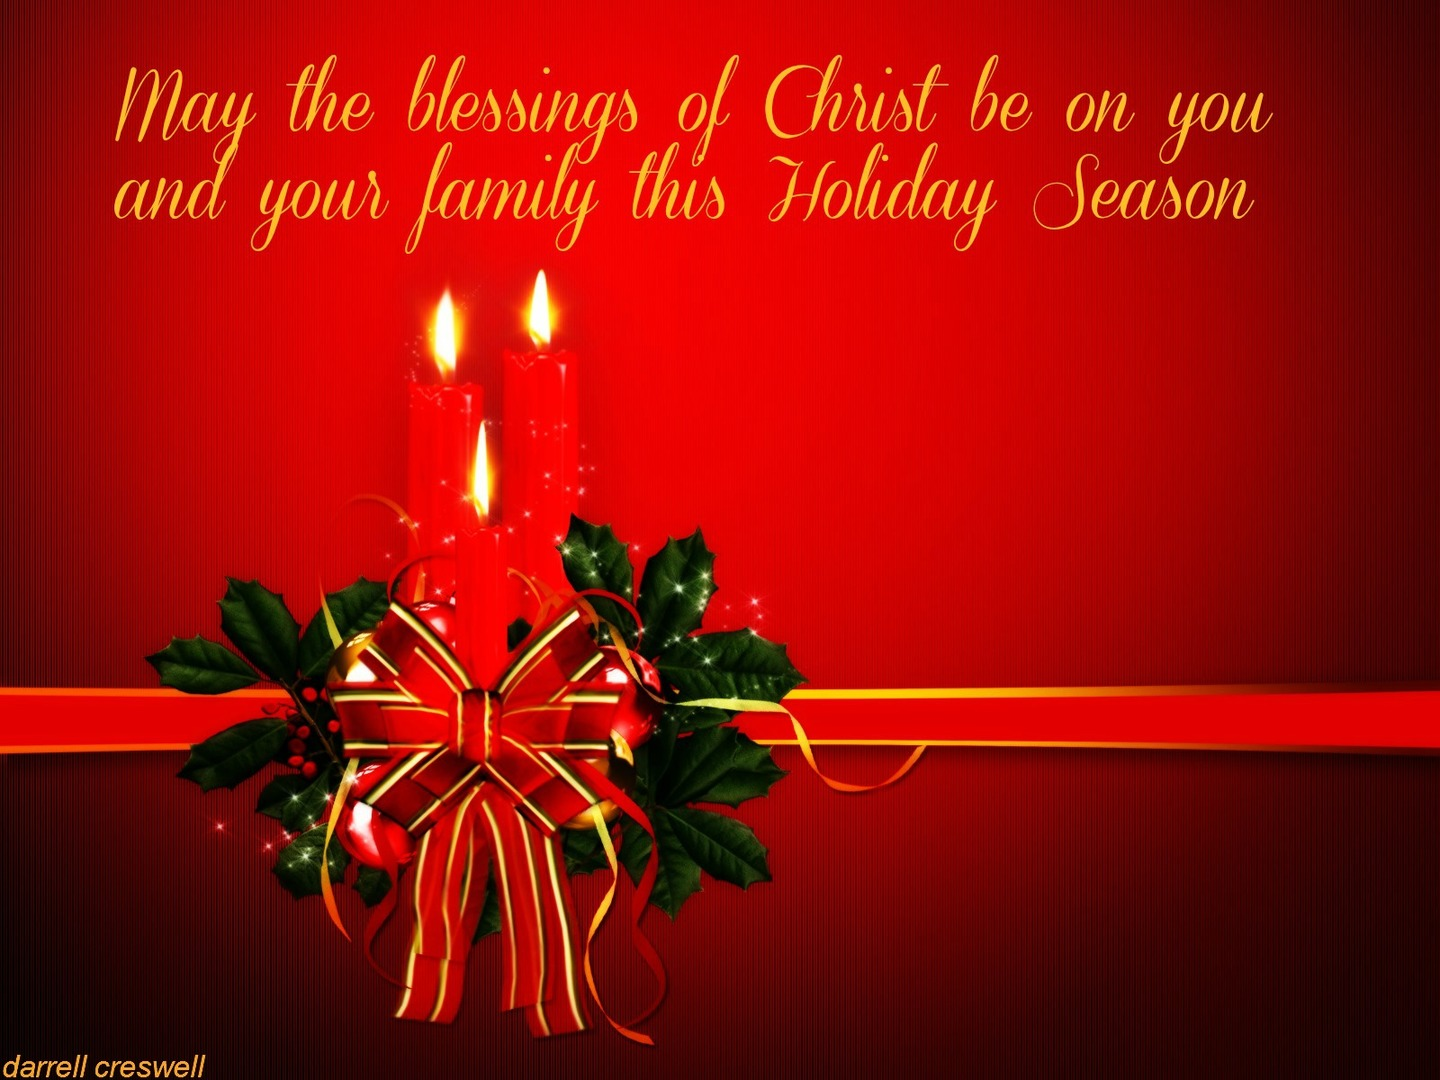 blessings-of-christ-holiday-season1.jpg